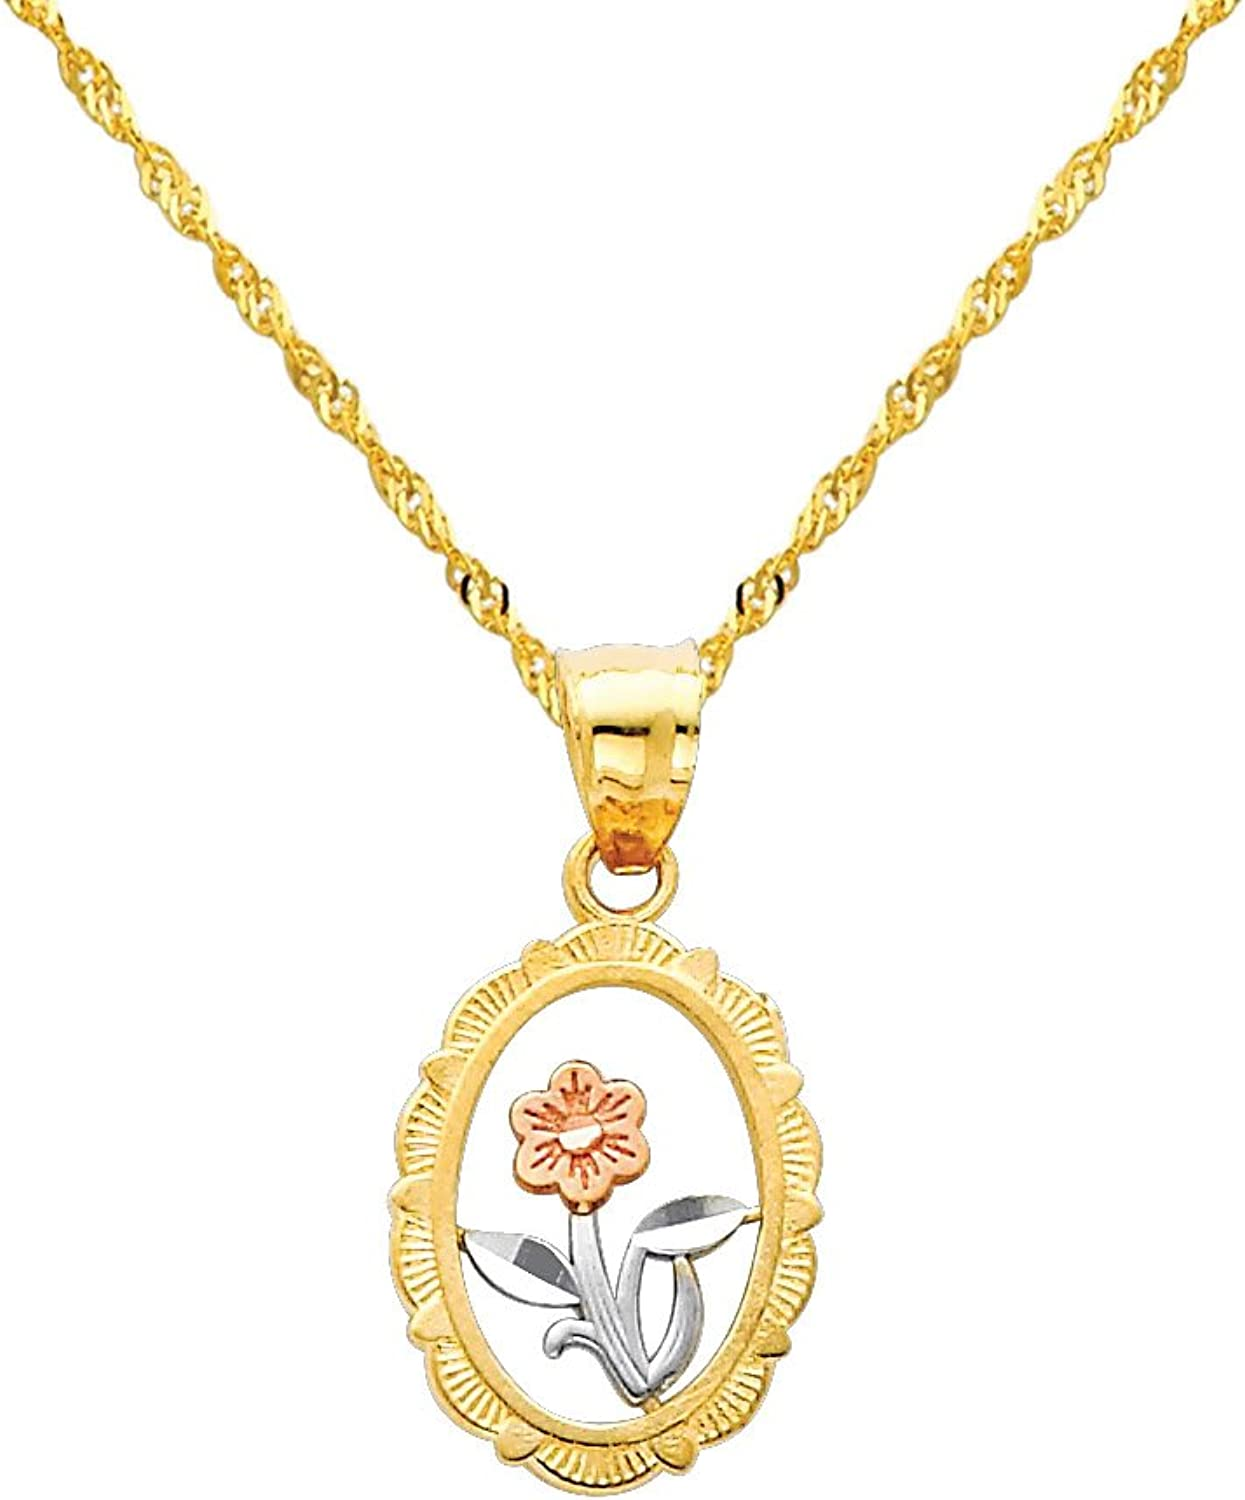 14k Tri color gold Flower Charm Pendant with 1.2mm Singapore Chain Necklace